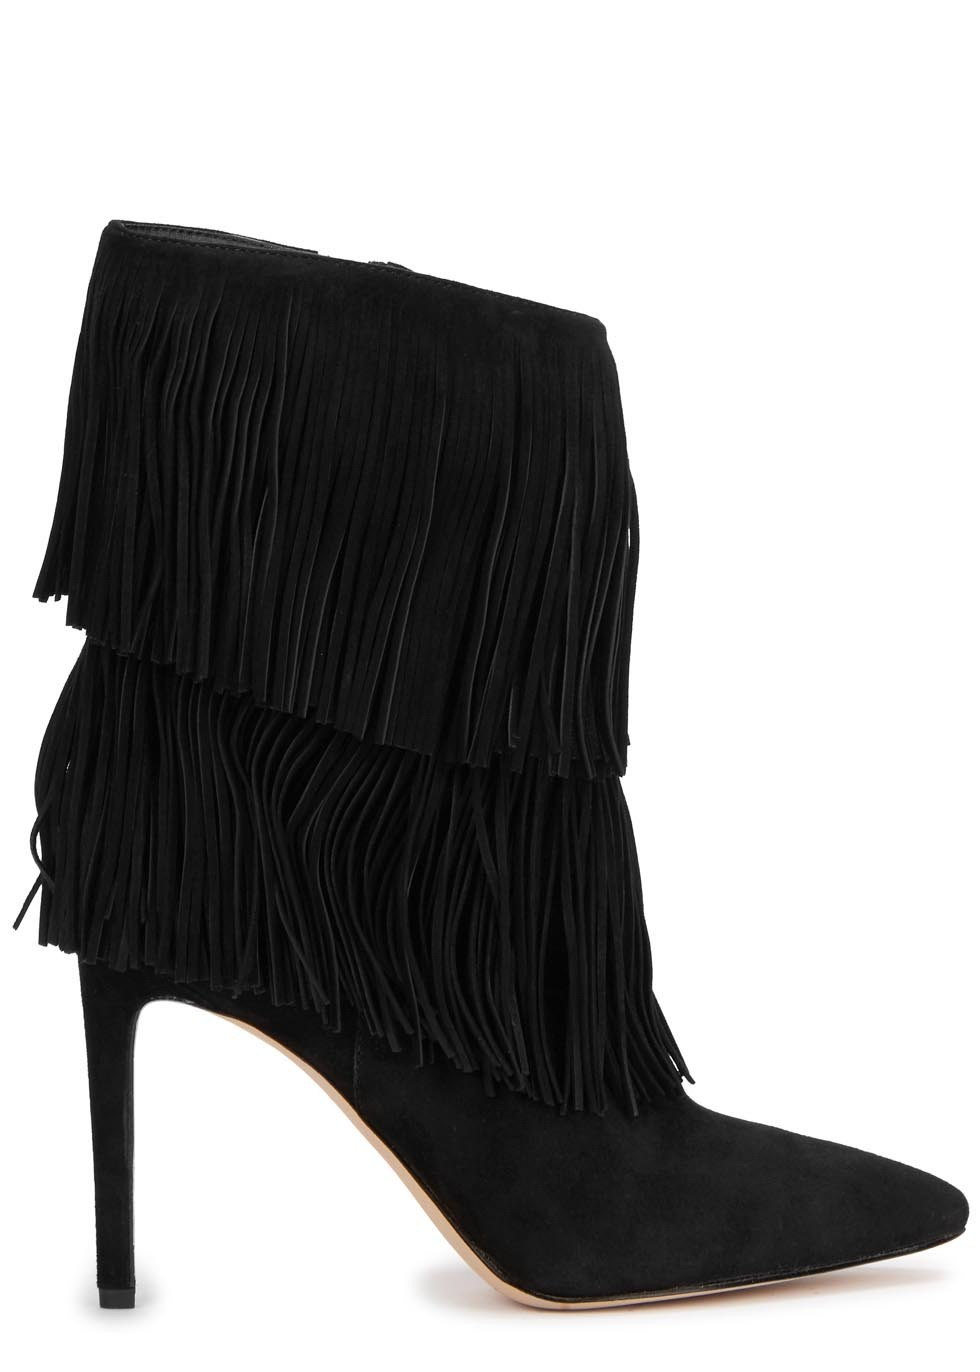 Belinda Black Fringed Suede Boots - predominant colour: black; material: suede; heel height: high; heel: stiletto; toe: pointed toe; boot length: ankle boot; style: standard; finish: plain; pattern: plain; embellishment: fringing; occasions: creative work; season: a/w 2015